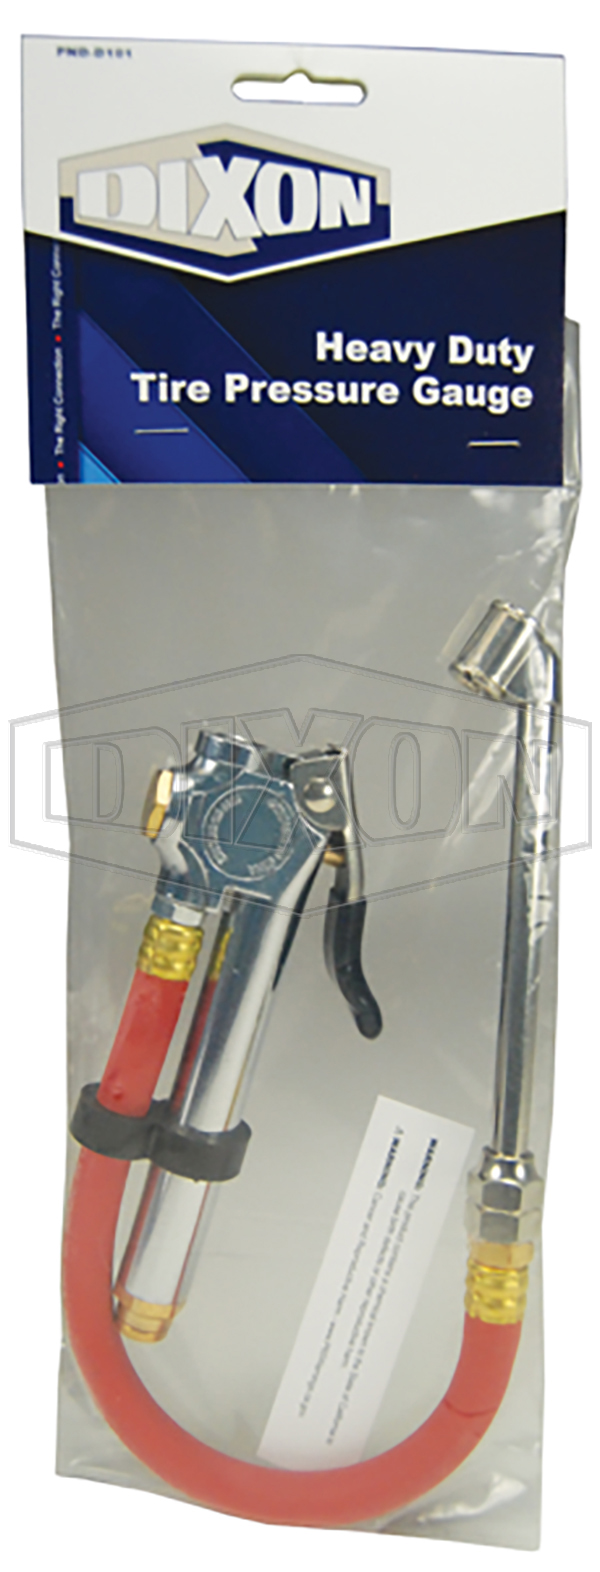 Heavy Duty Tire Pressure Gauge - Retail Packaged